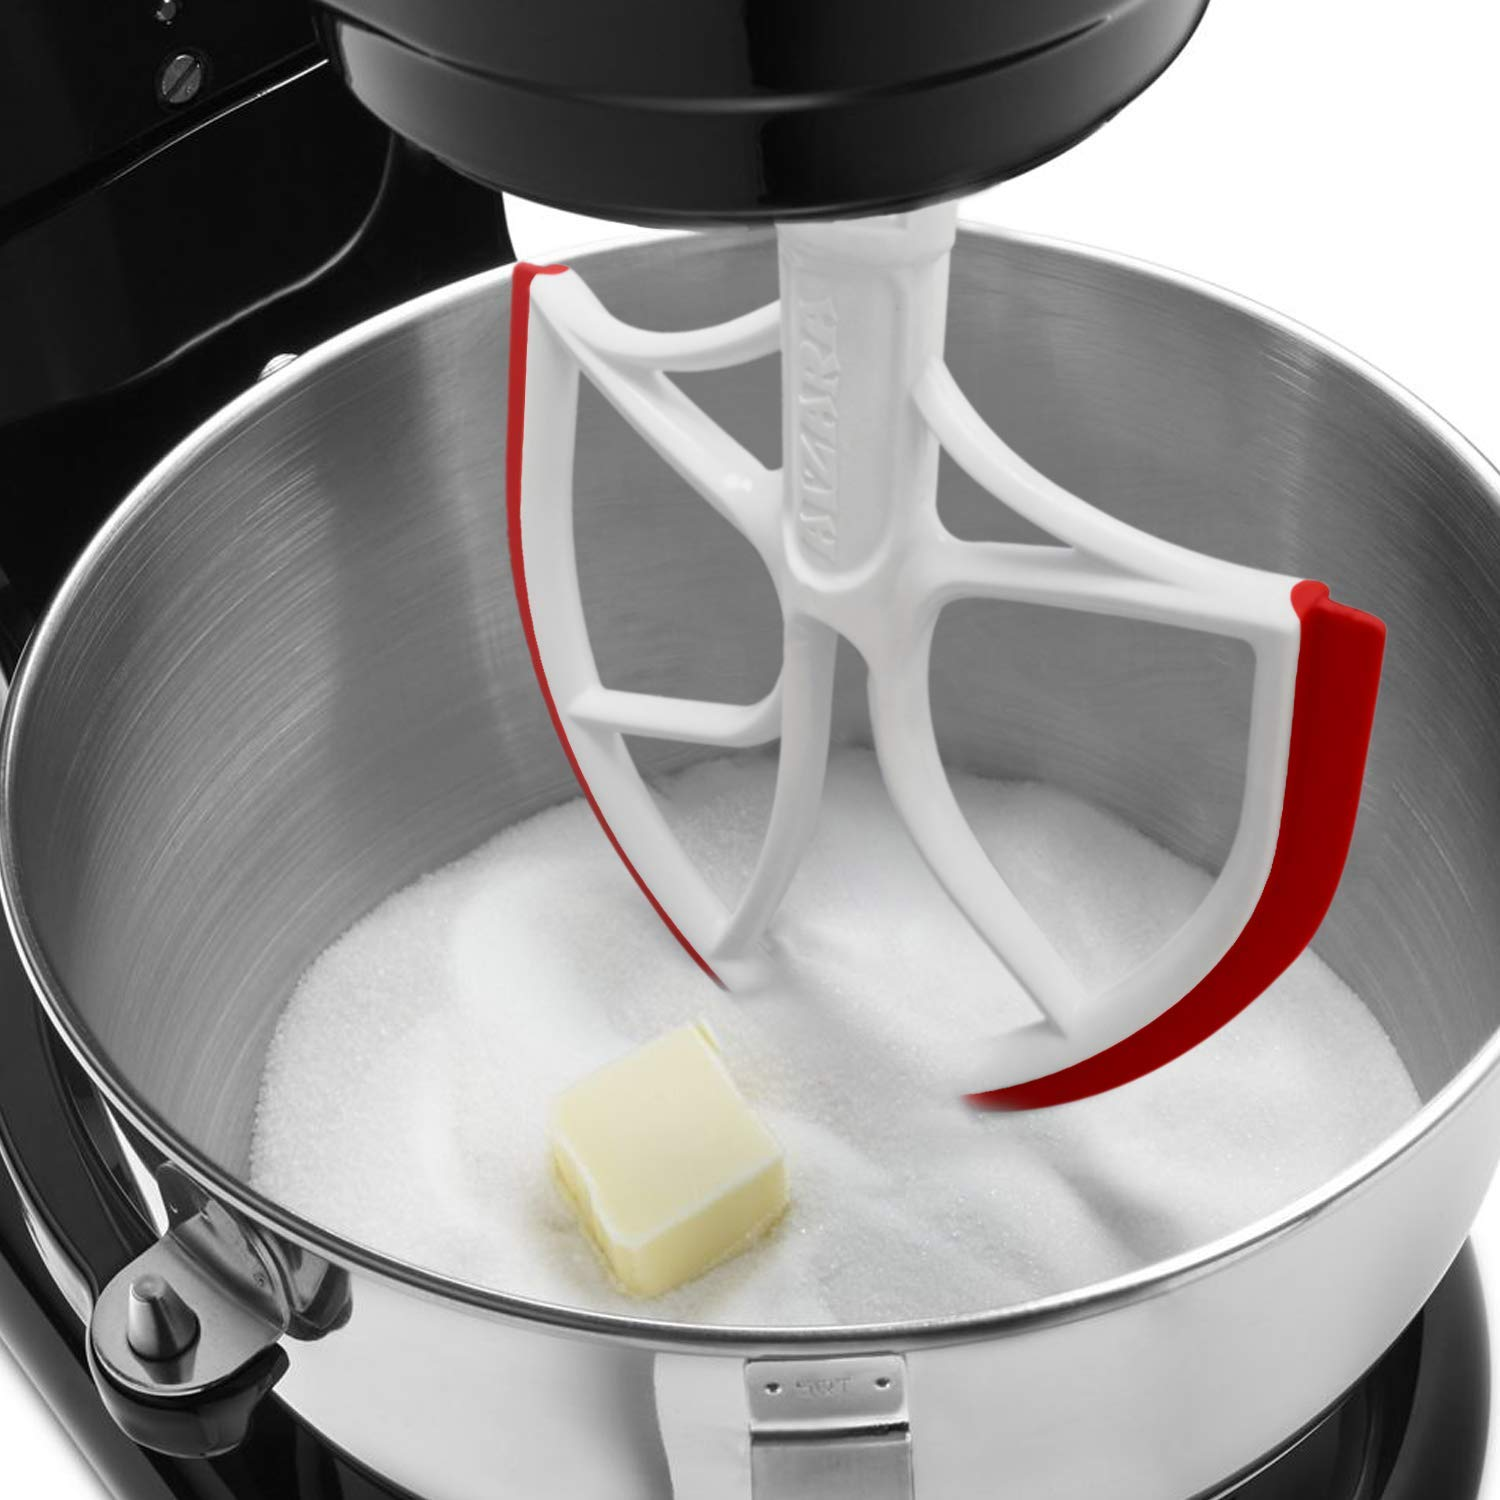 Flex Edge Beater for KitchenAid Bowl-Lift Stand Mixer Attachment 6 Quart - Coated Flat Beater Blade with Silicone Edges - Useful Mixer Accessory(Red)